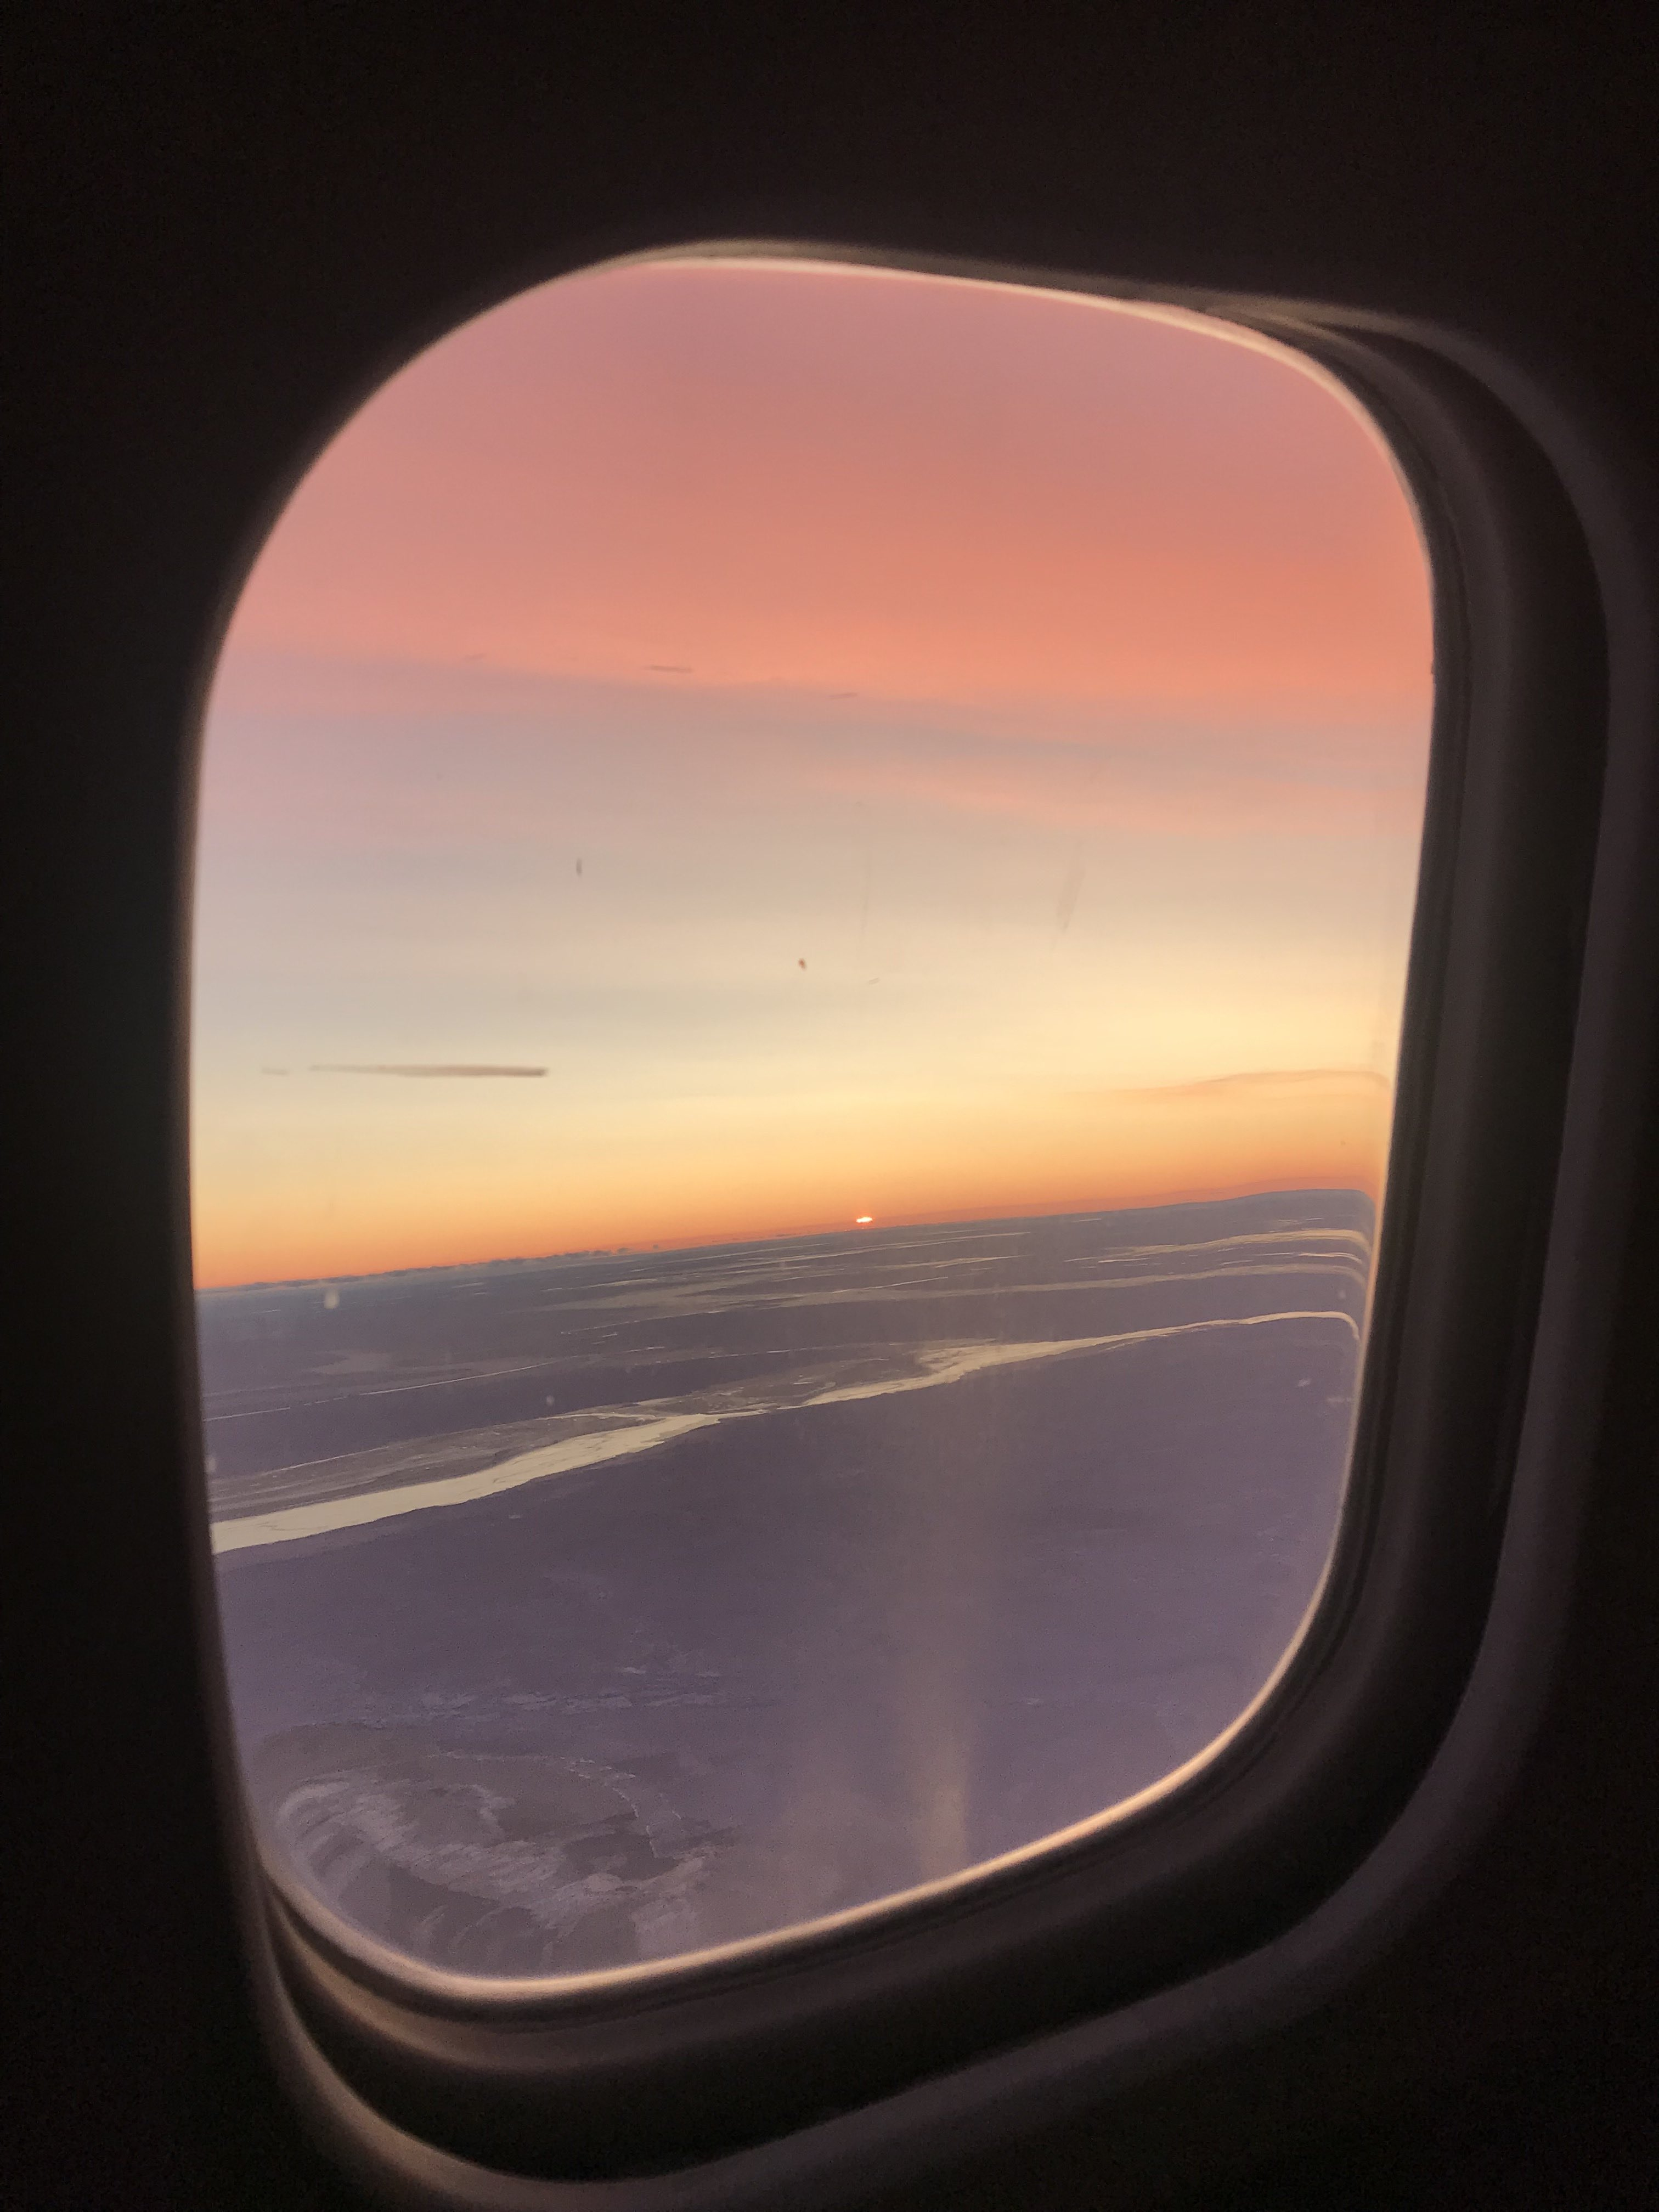 Sunrise over the Weddell Sea and sea ice below from the window of the DC-8